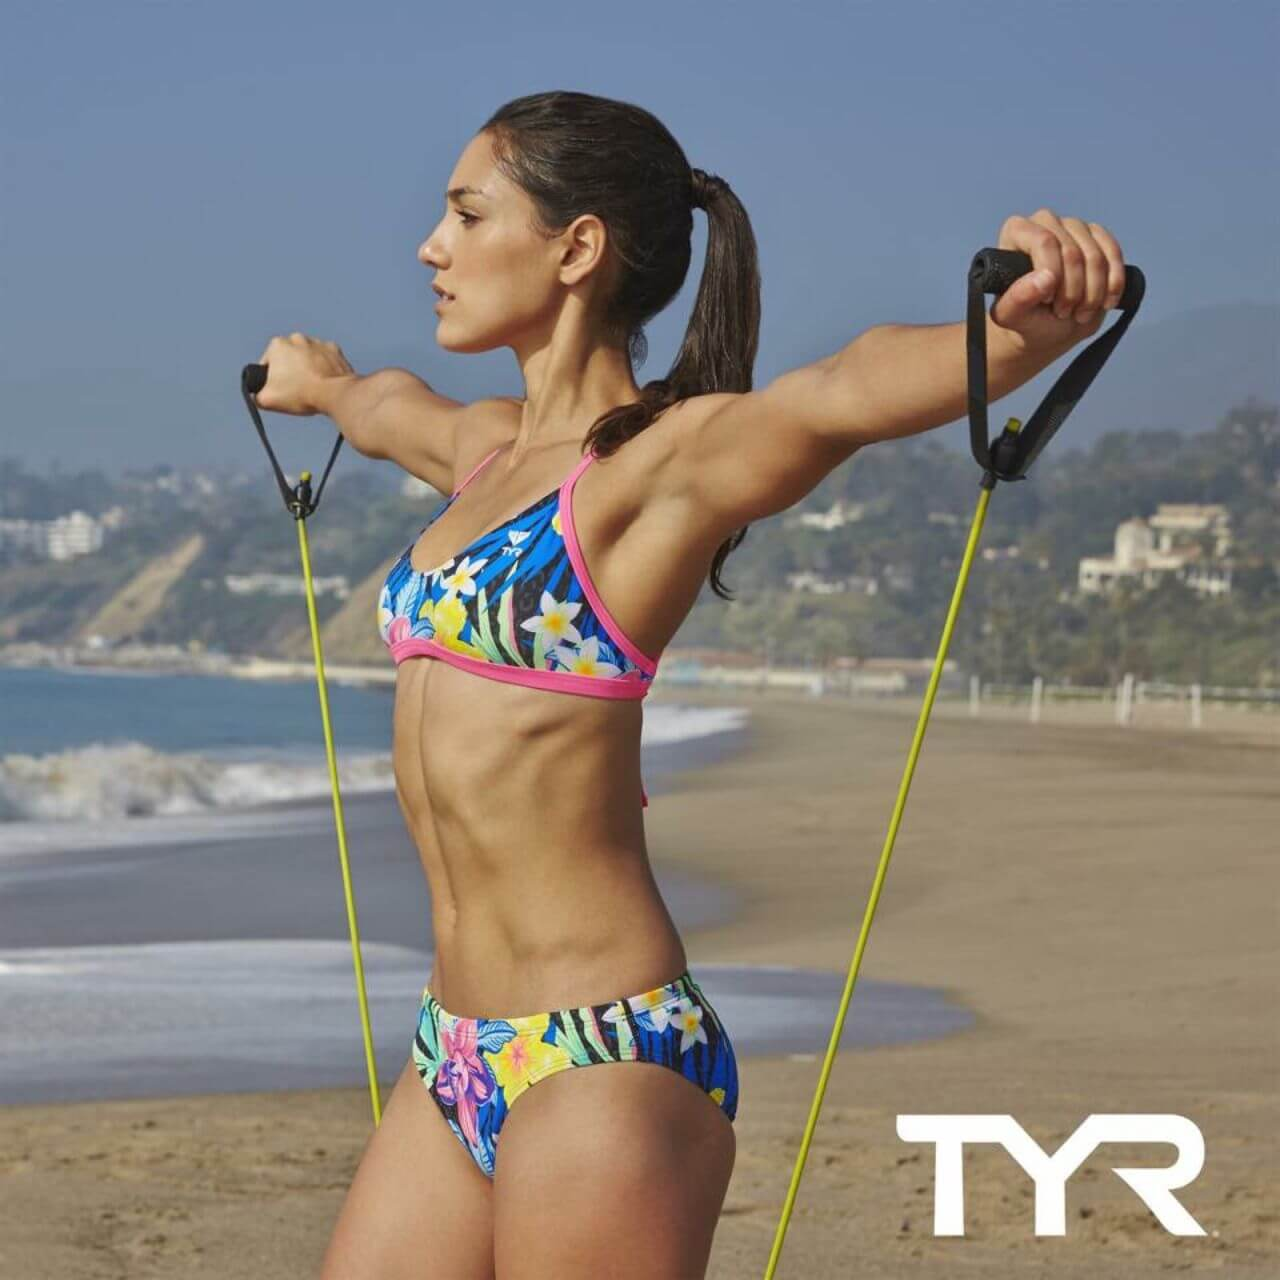 Allison Stokke Topless 41 nude pictures of allison stokke which will leave you